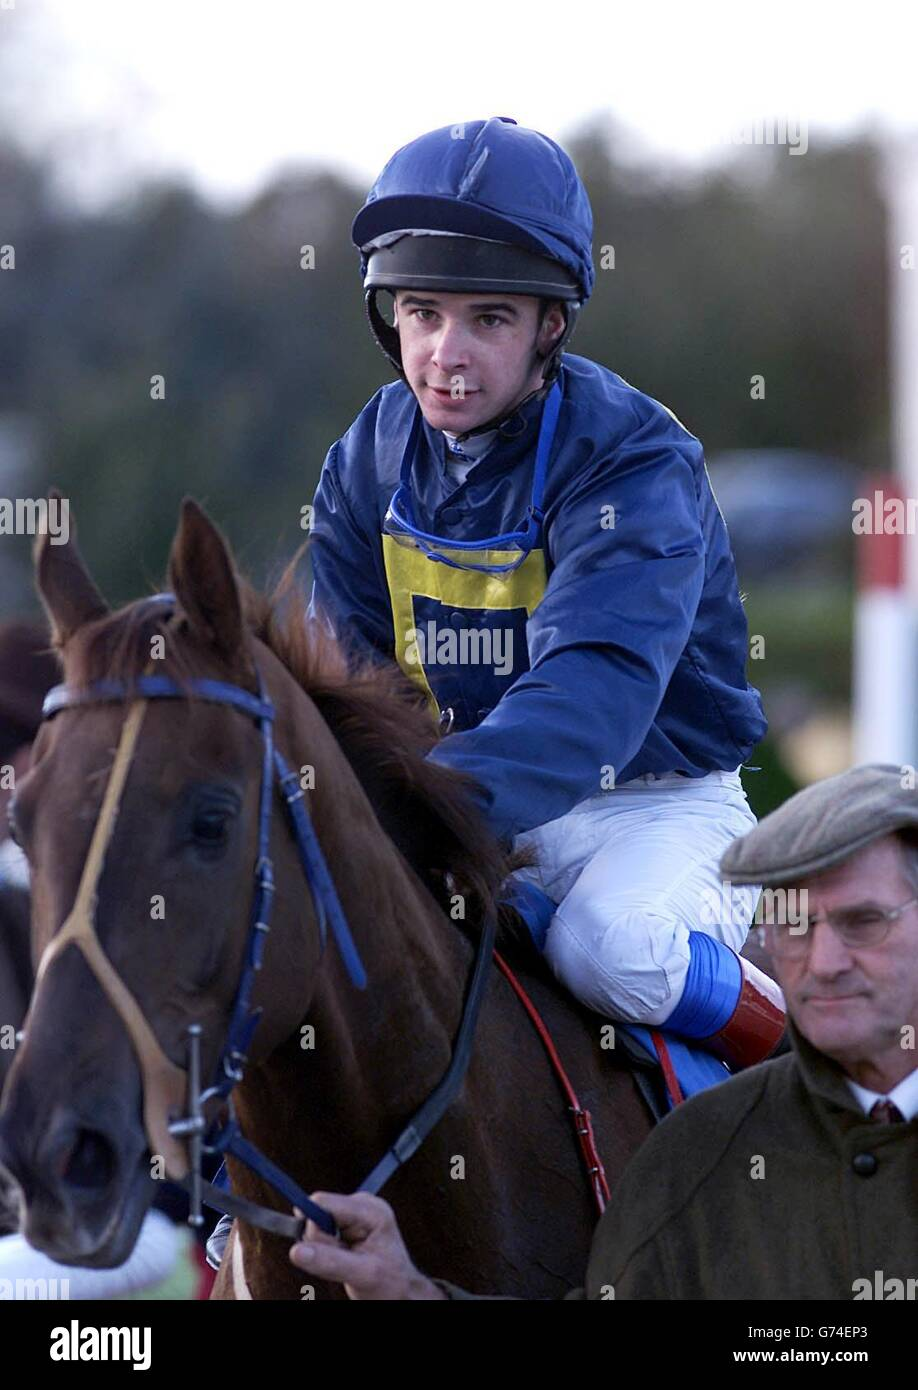 Fourbe avec Fran Jockey Ferris Photo Stock